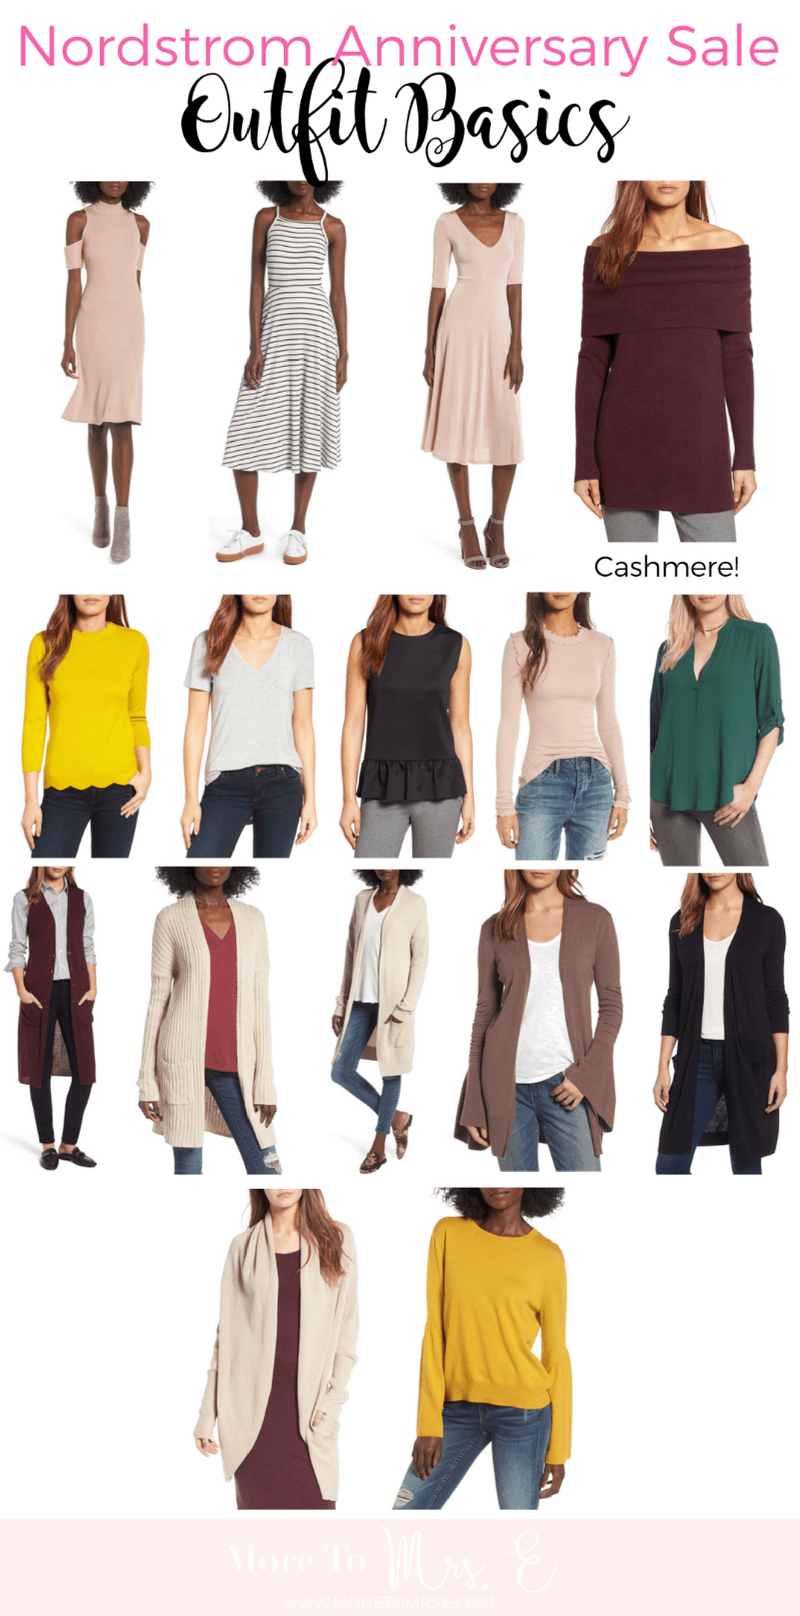 Nordstrom Anniversary Sale Deals_outfit basics_tshirt_cardigan_top_dresses_casual